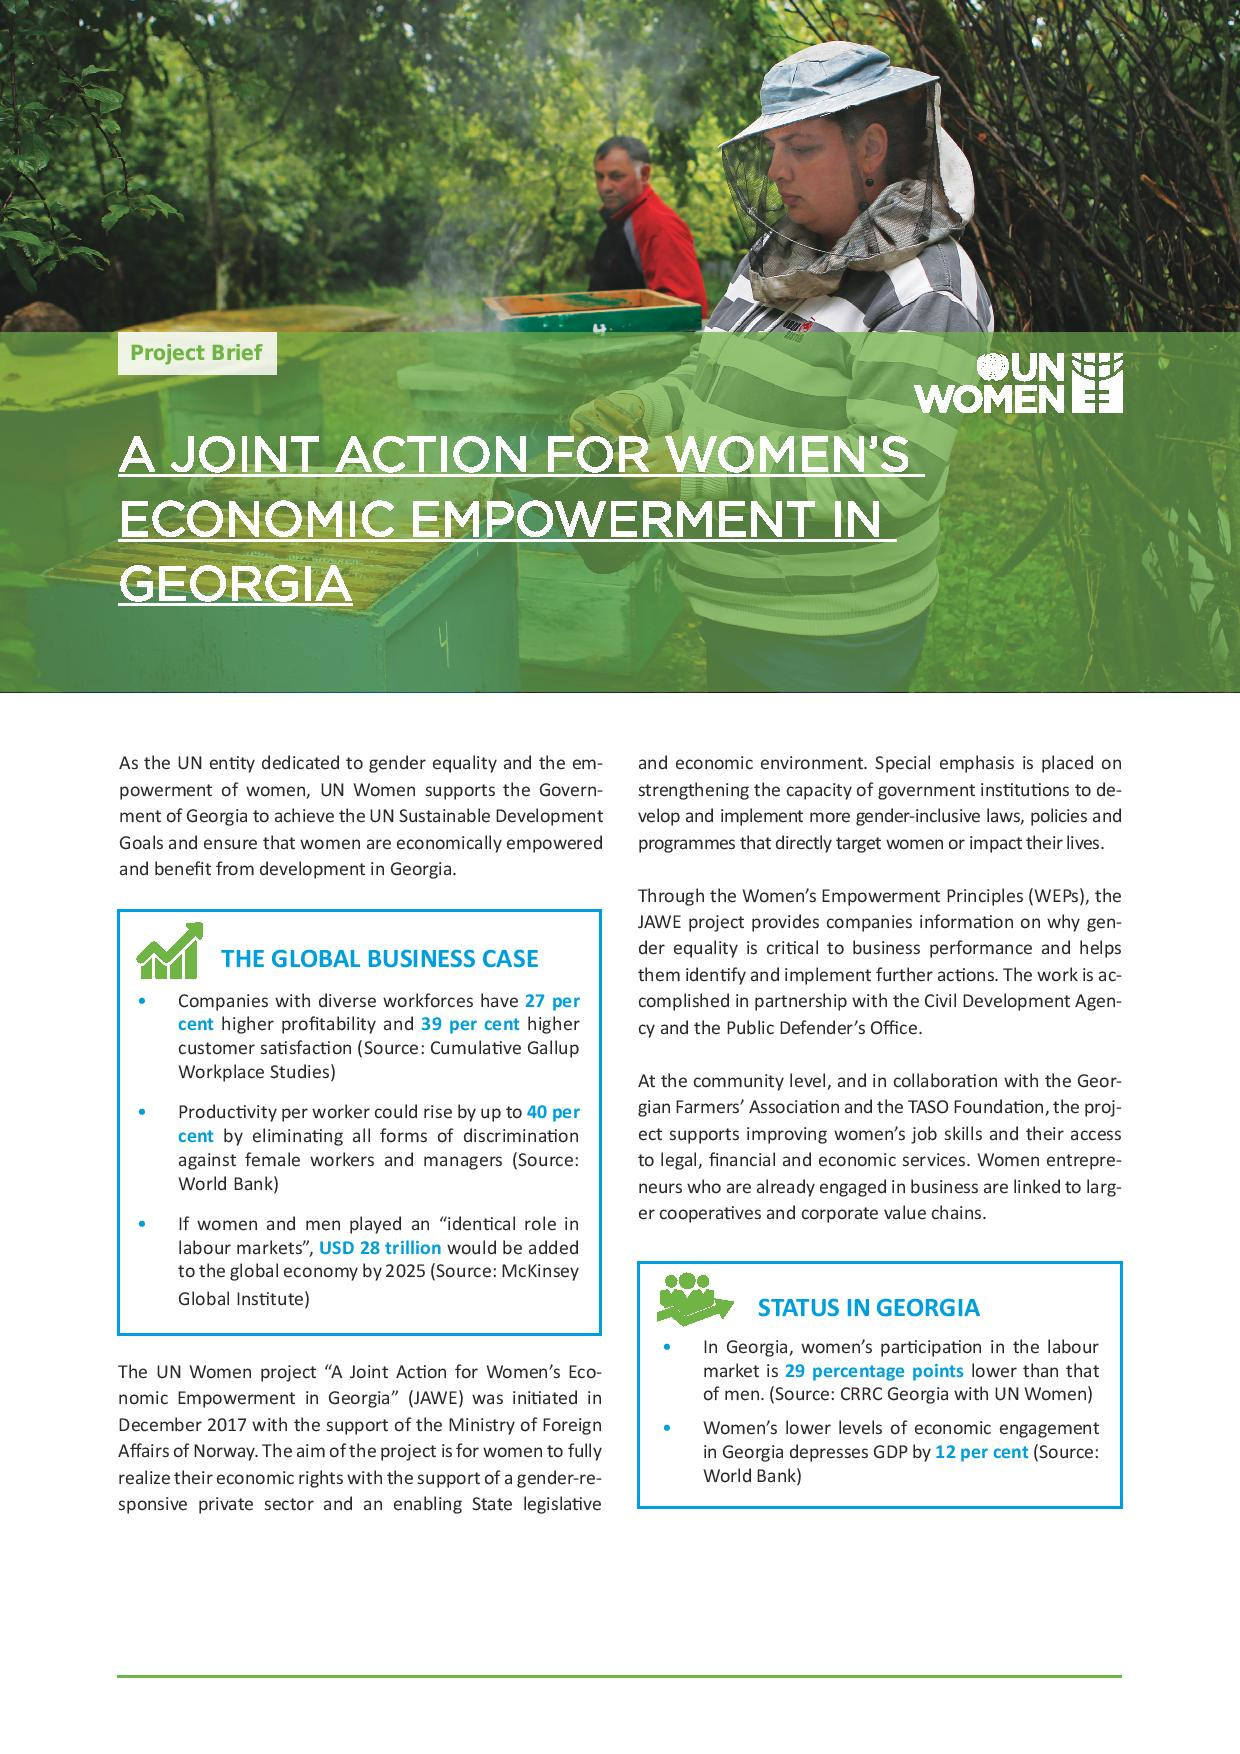 A Joint Action for Women's Economic Empowerment in Georgia